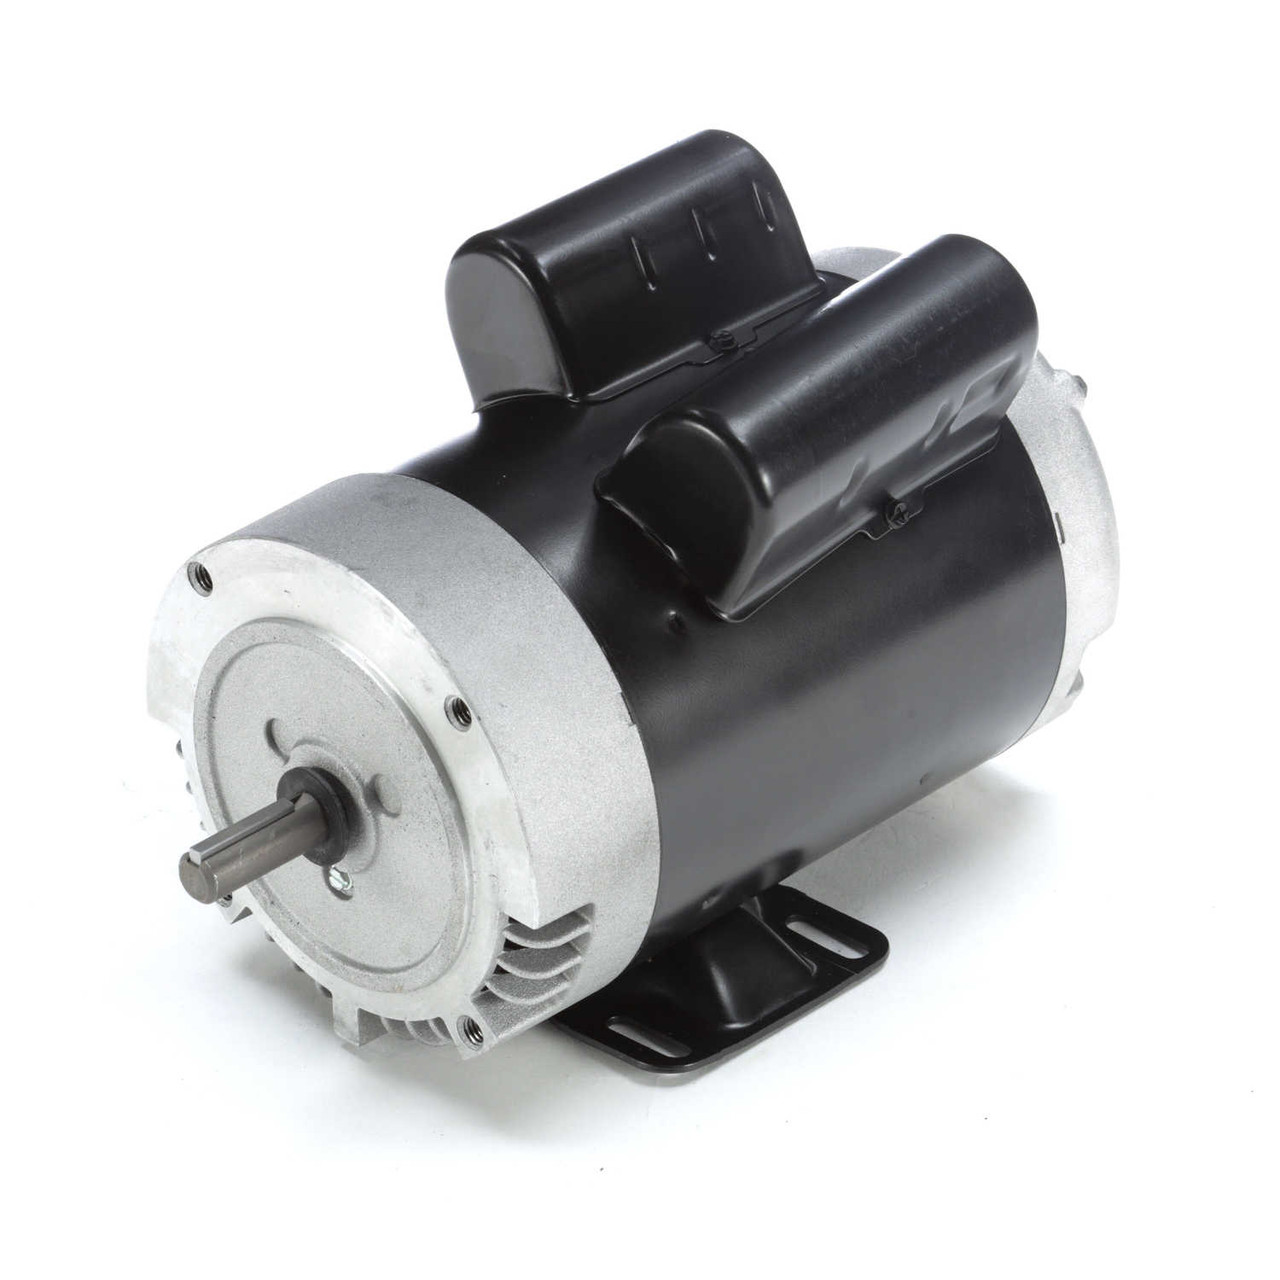 C1269A Single Phase Dripproof C-Face Rigid Base Motor 2 HP